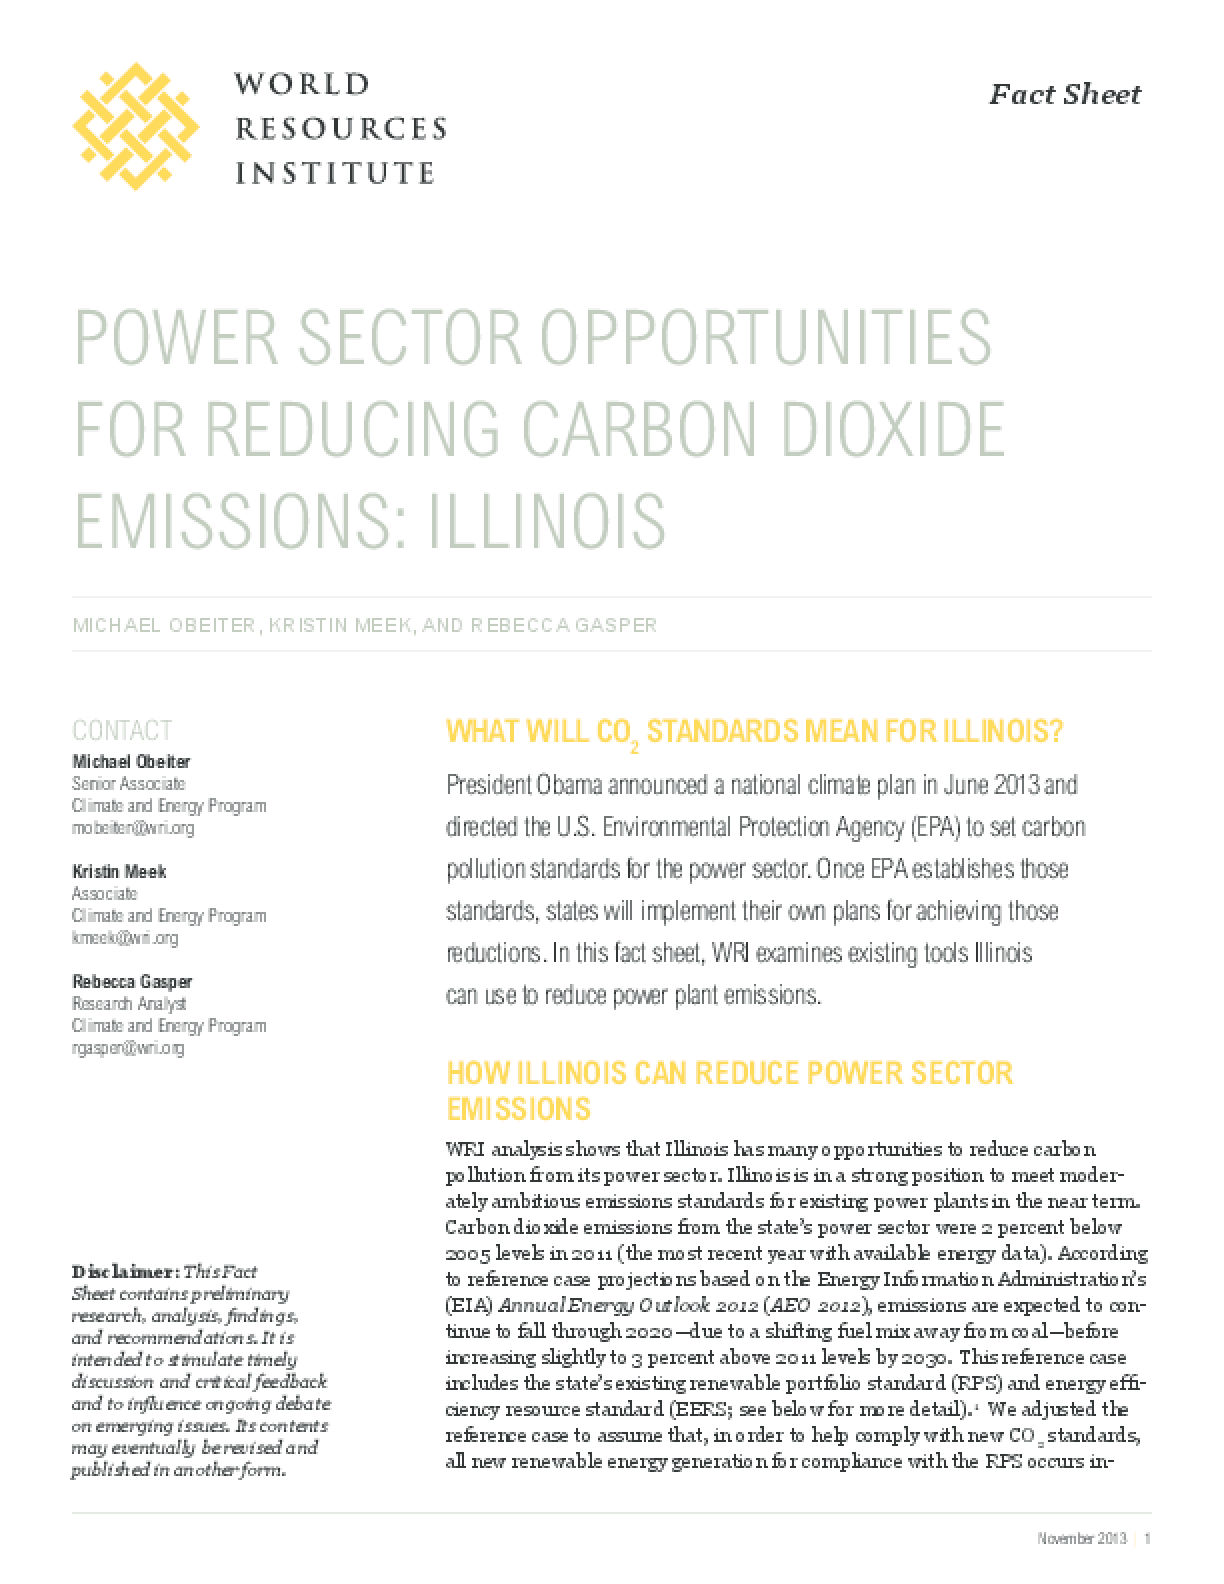 Power Sector Opportunities for Reducing Carbon Dioxide Emissions: Illinois